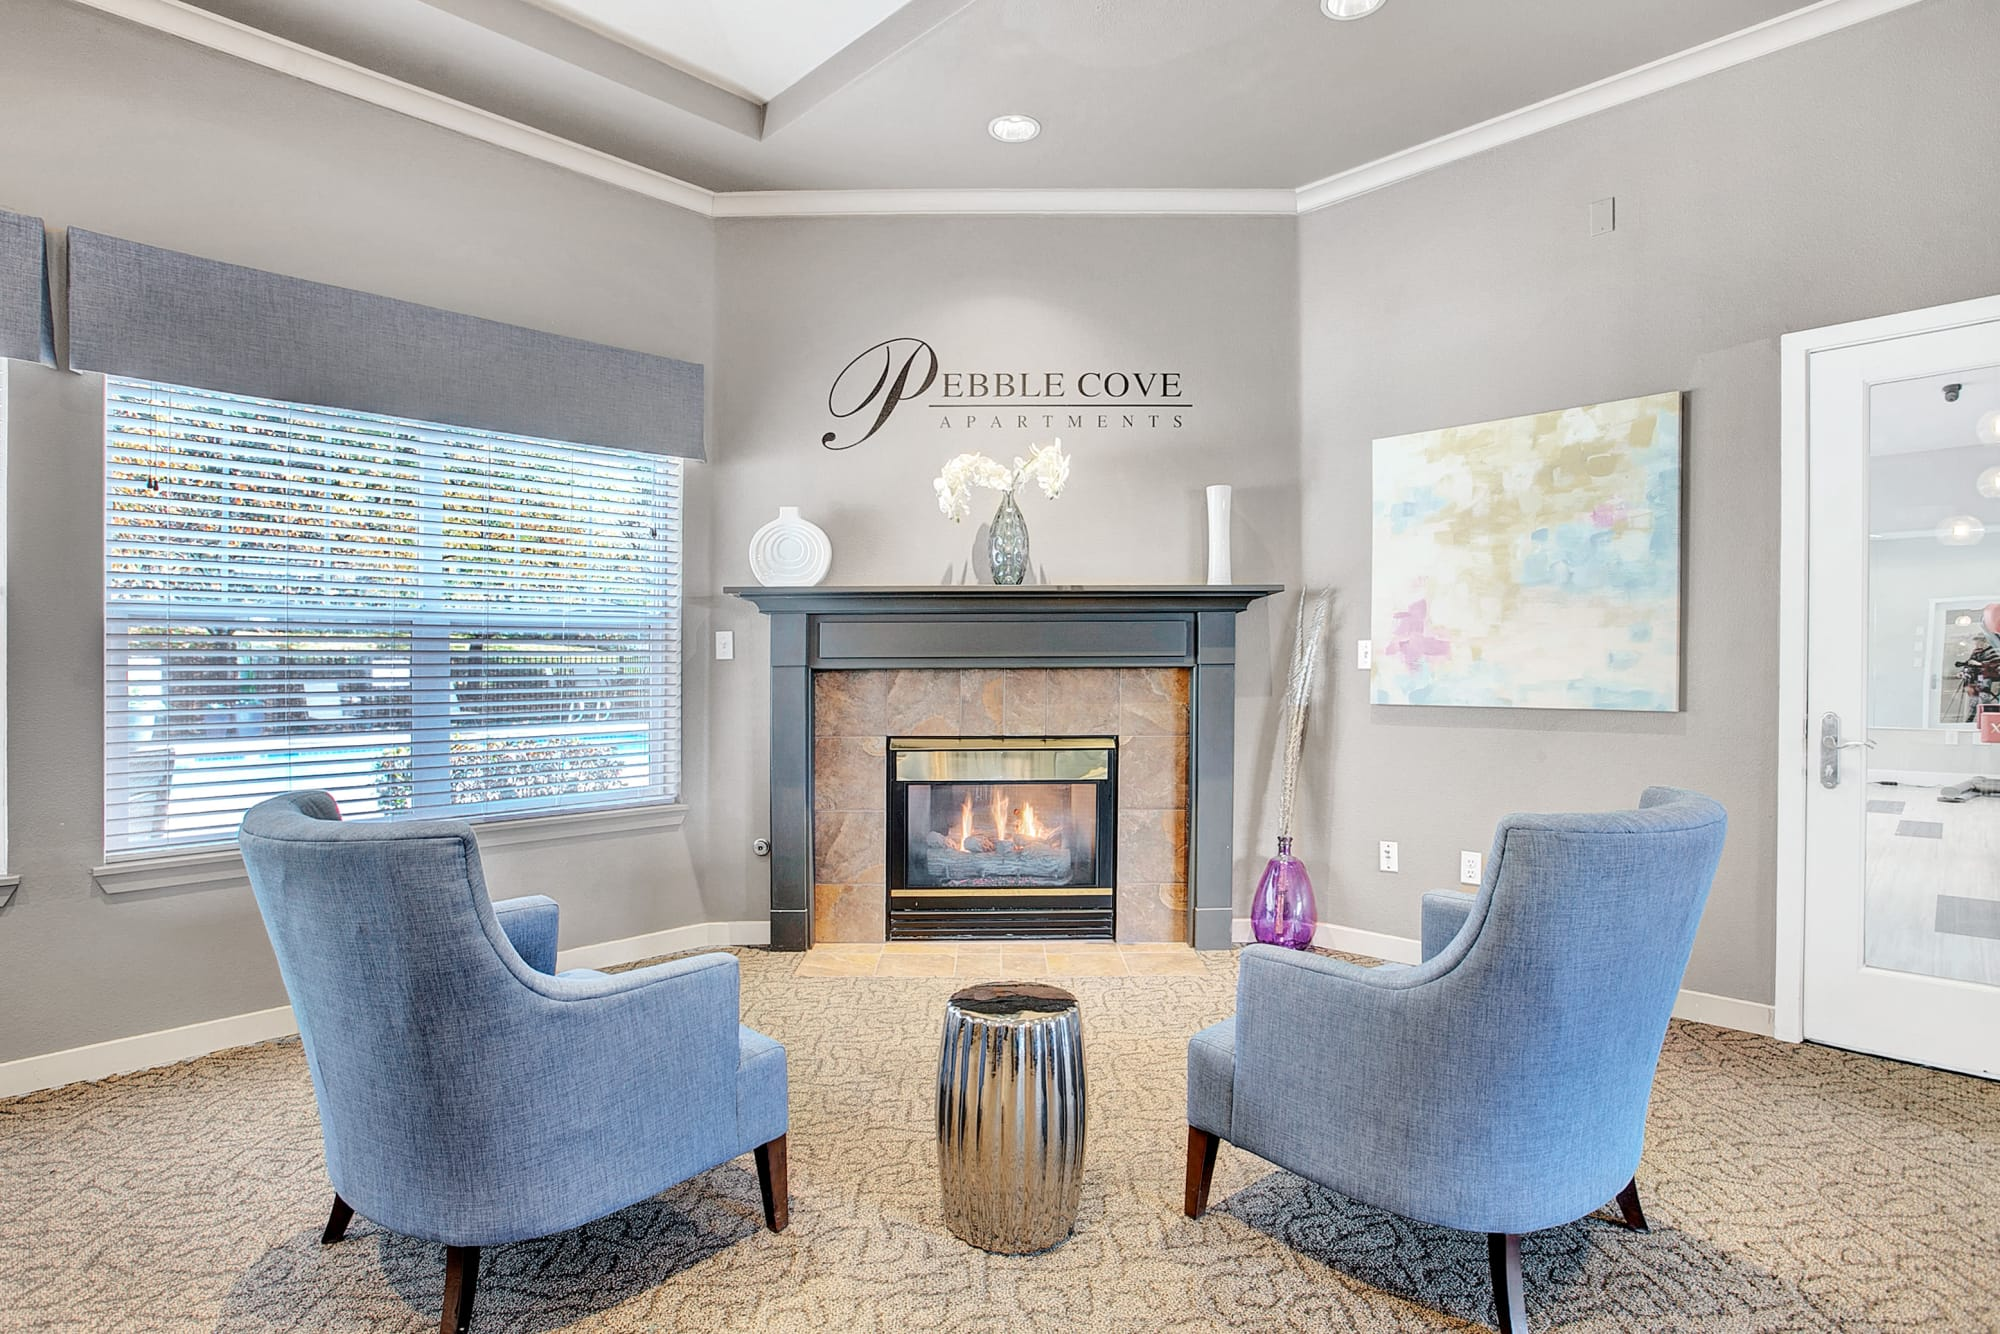 Clubhouse with Fireplace Lounge at Pebble Cove Apartments in Renton